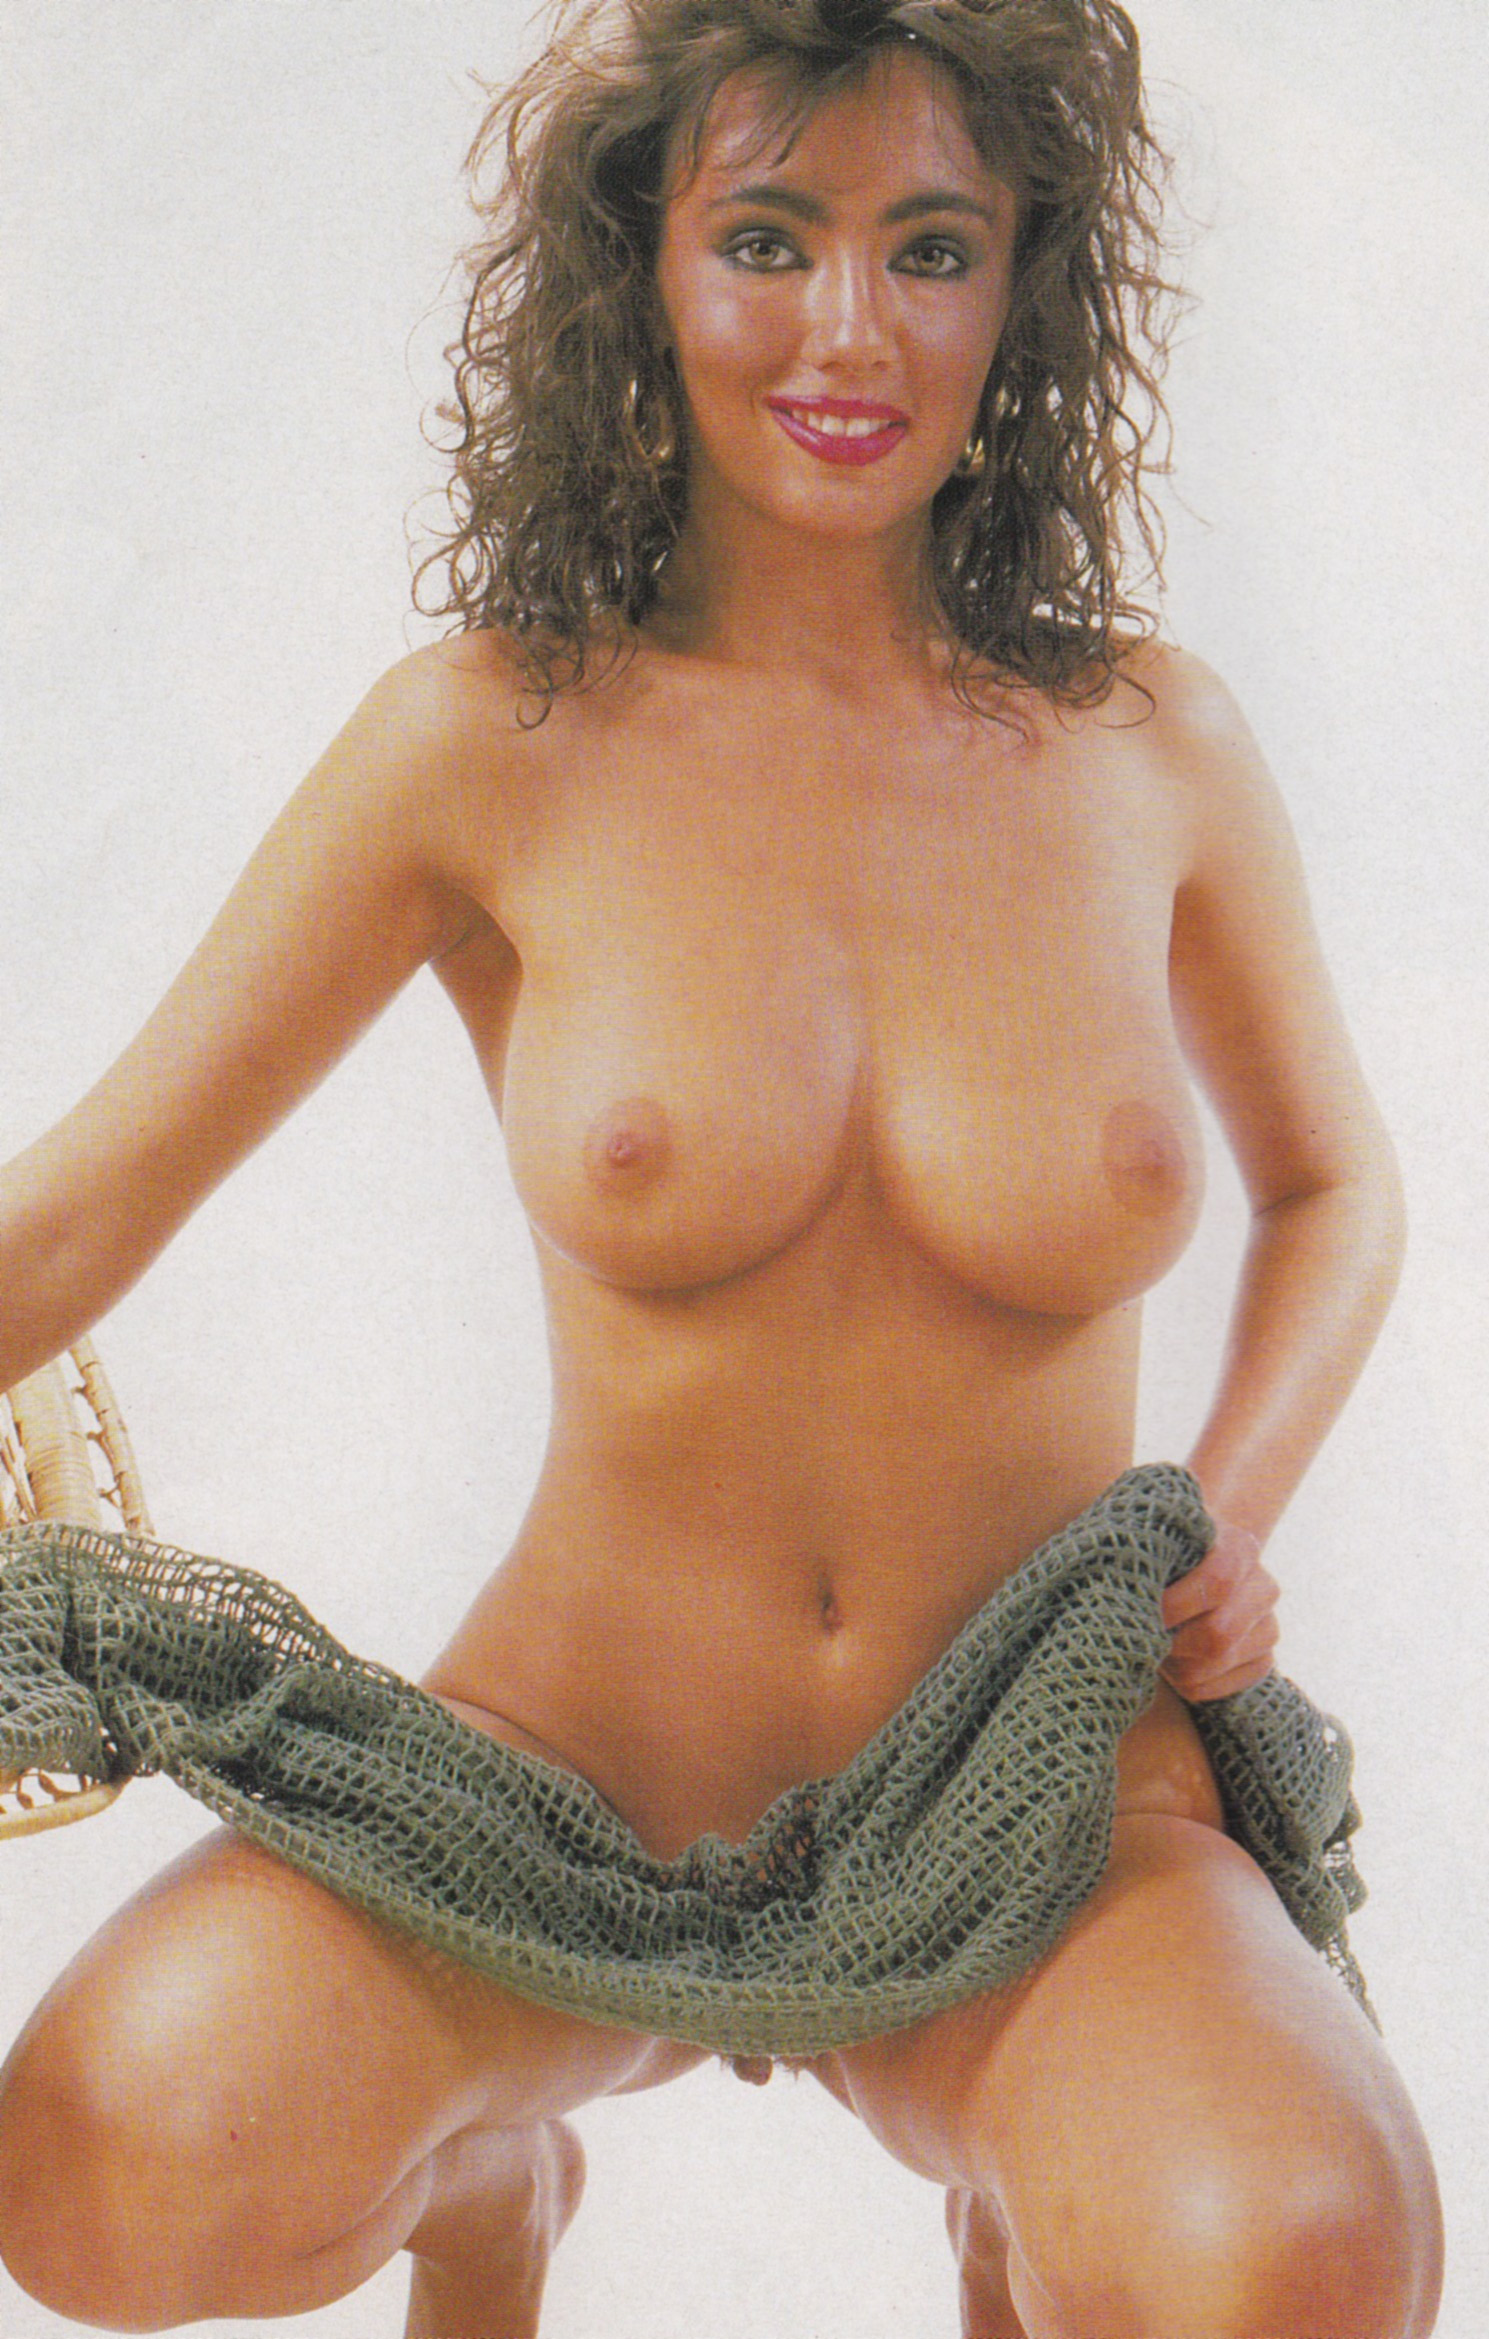 Kathy ireland celebrity nude scenes pictures and pics